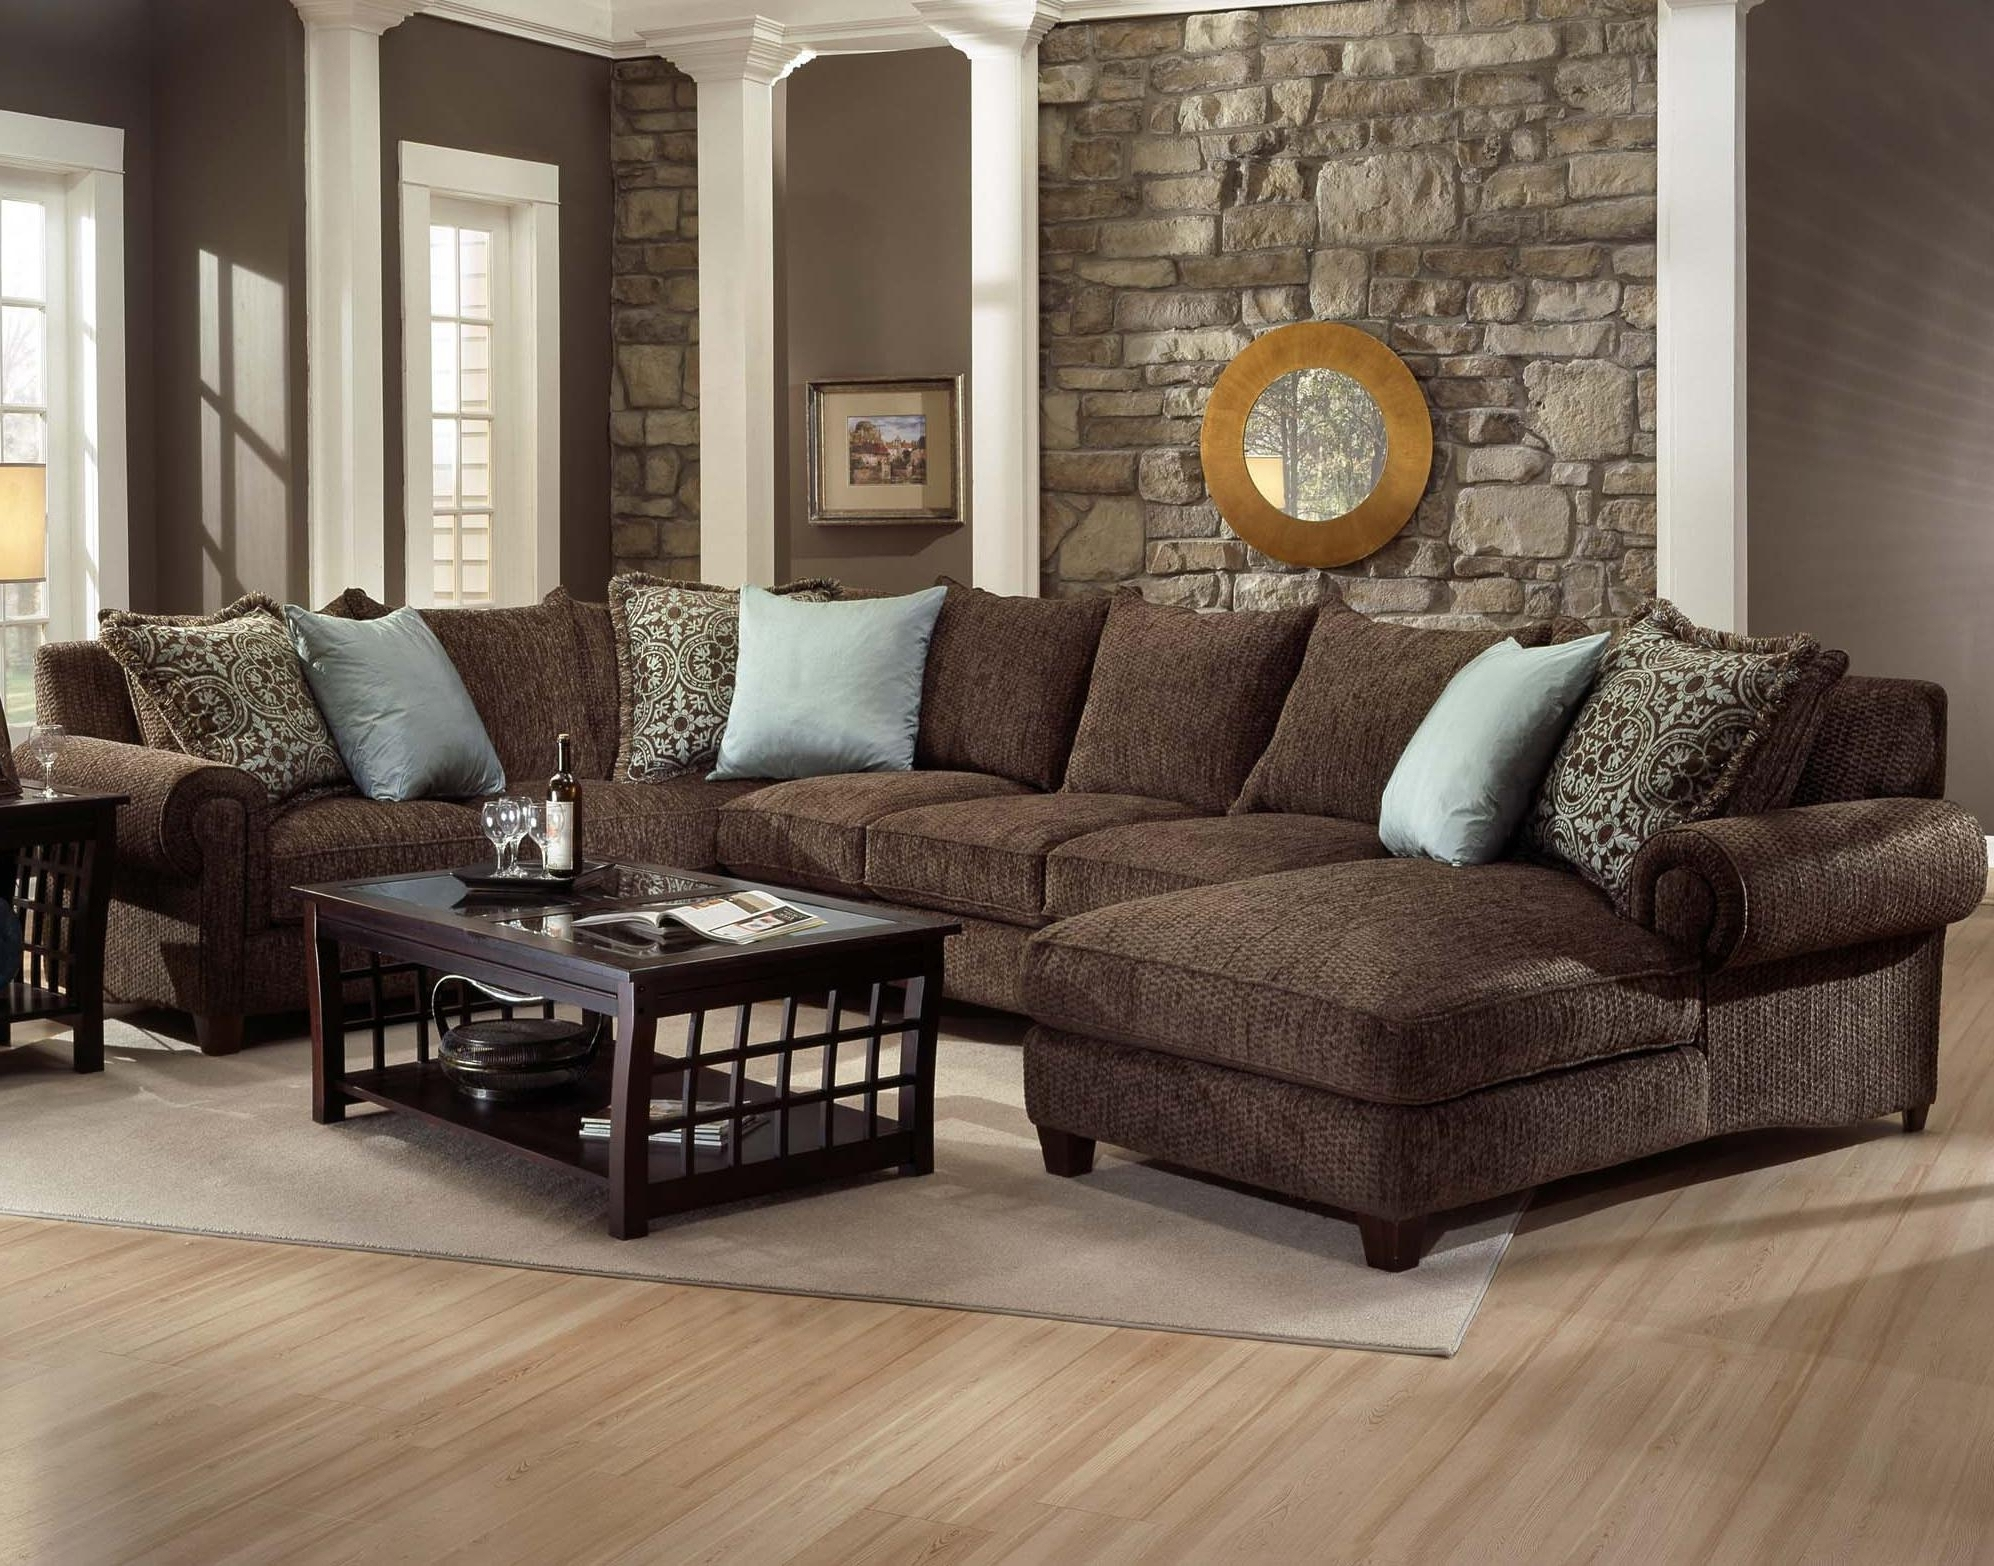 Preferred Jcpenney Sectional Sofas In 73 Wonderful Jcpenney Sectional Sofa Home Design (View 17 of 20)